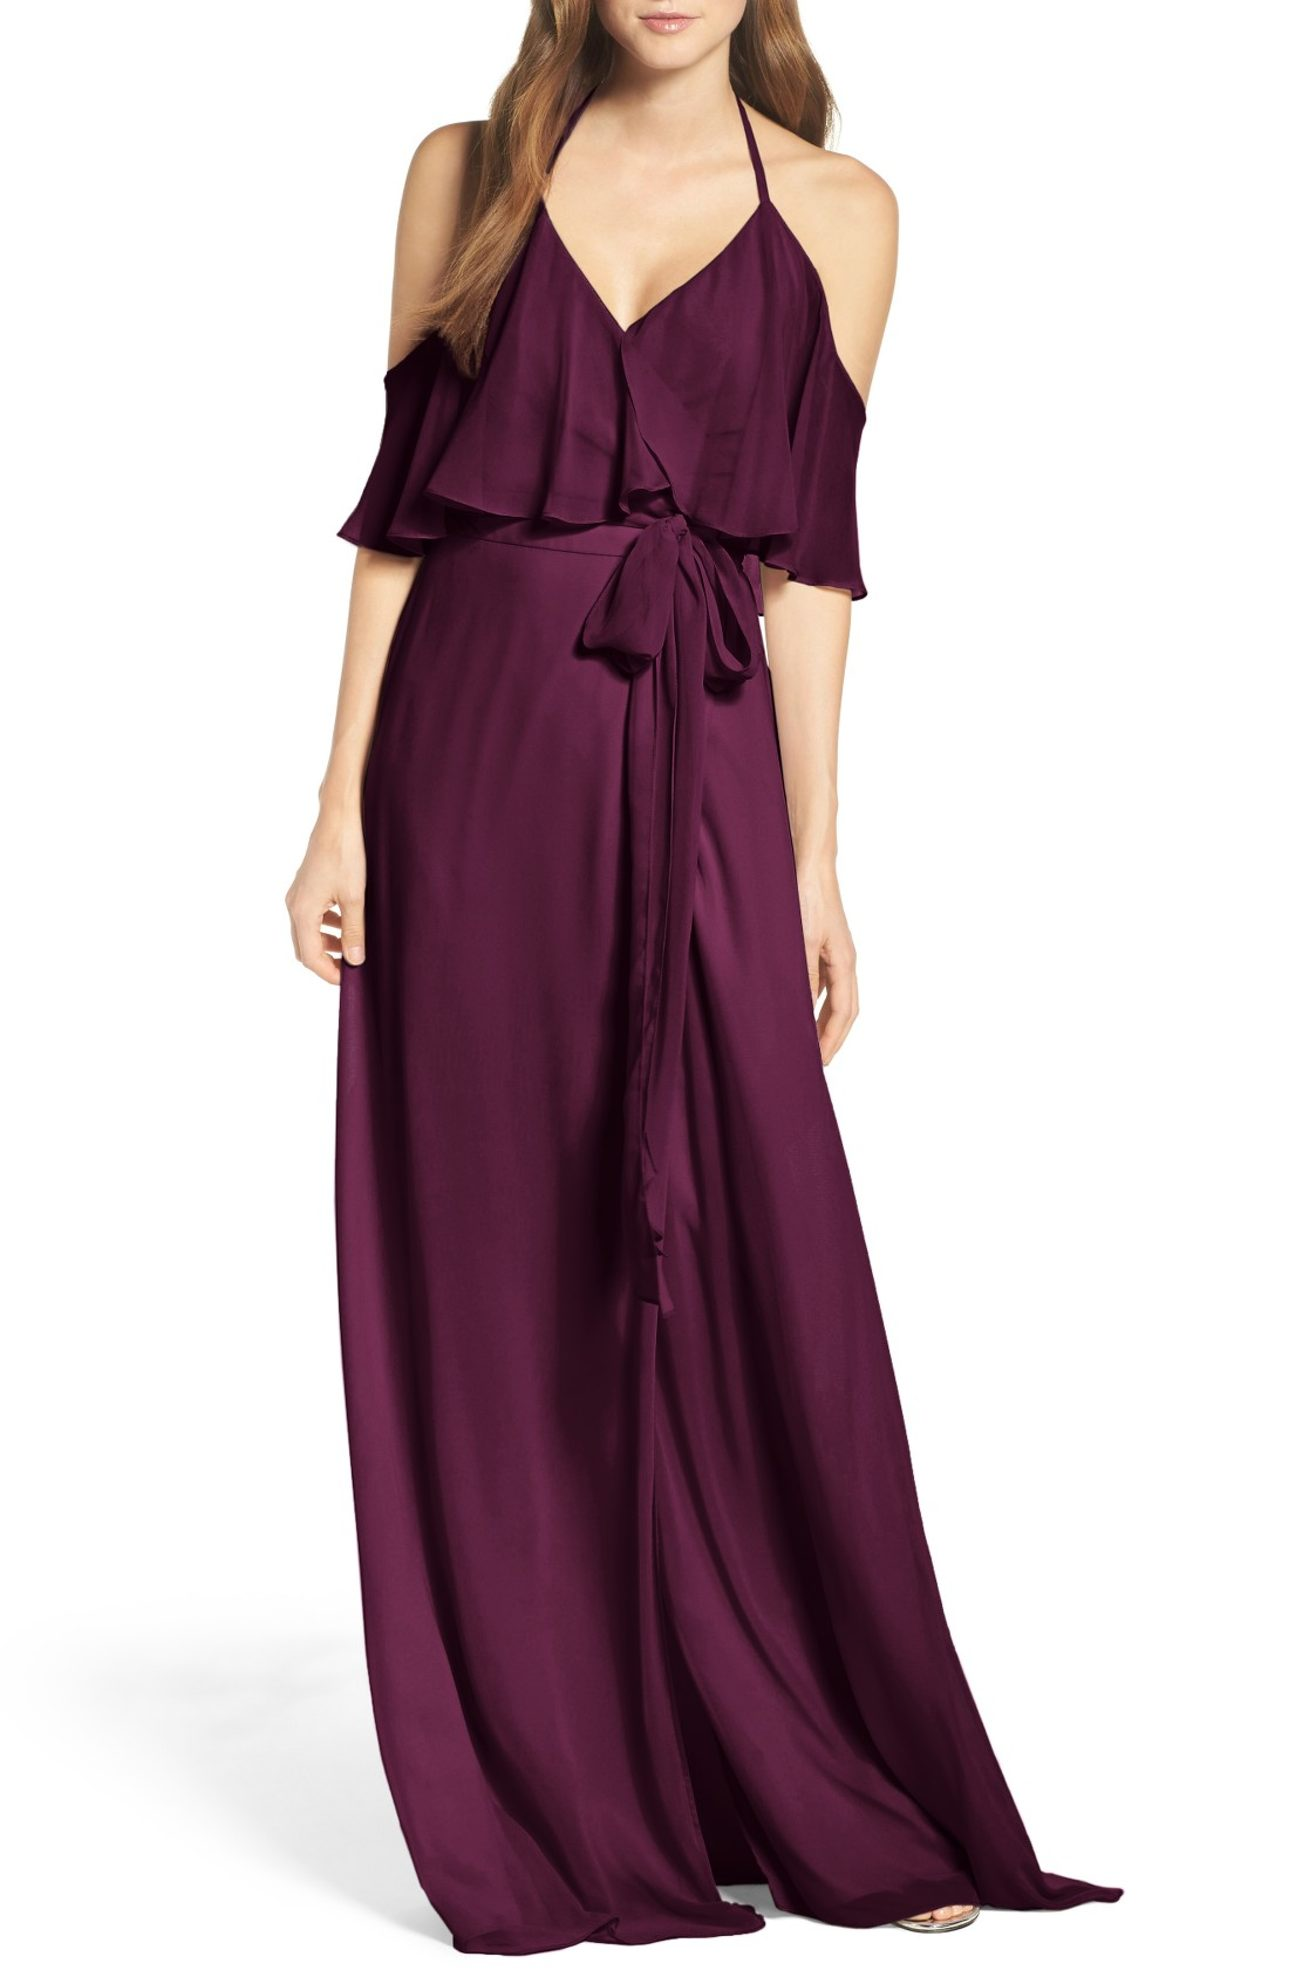 Ceremony by Joanna August, Cold Shoulder Tie Waist Halter Gown - $285.00. (Image: Nordstrom)